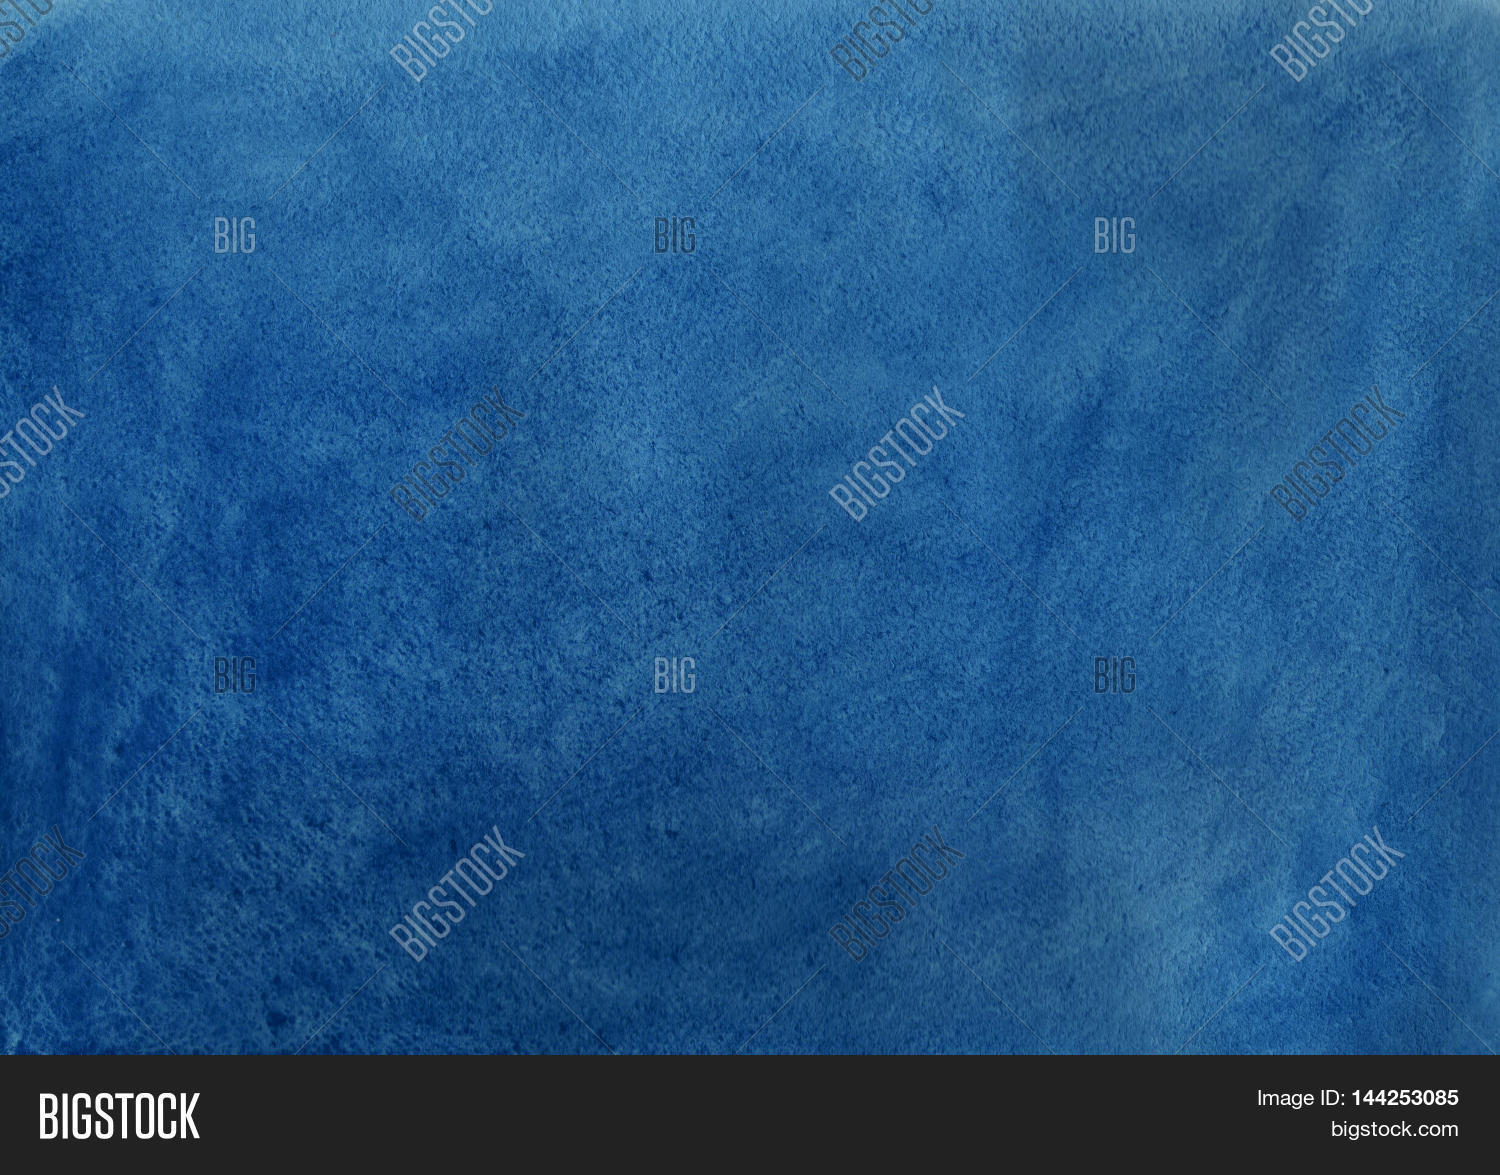 Abstract Dark Blue Watercolor Background Stock Photo ...